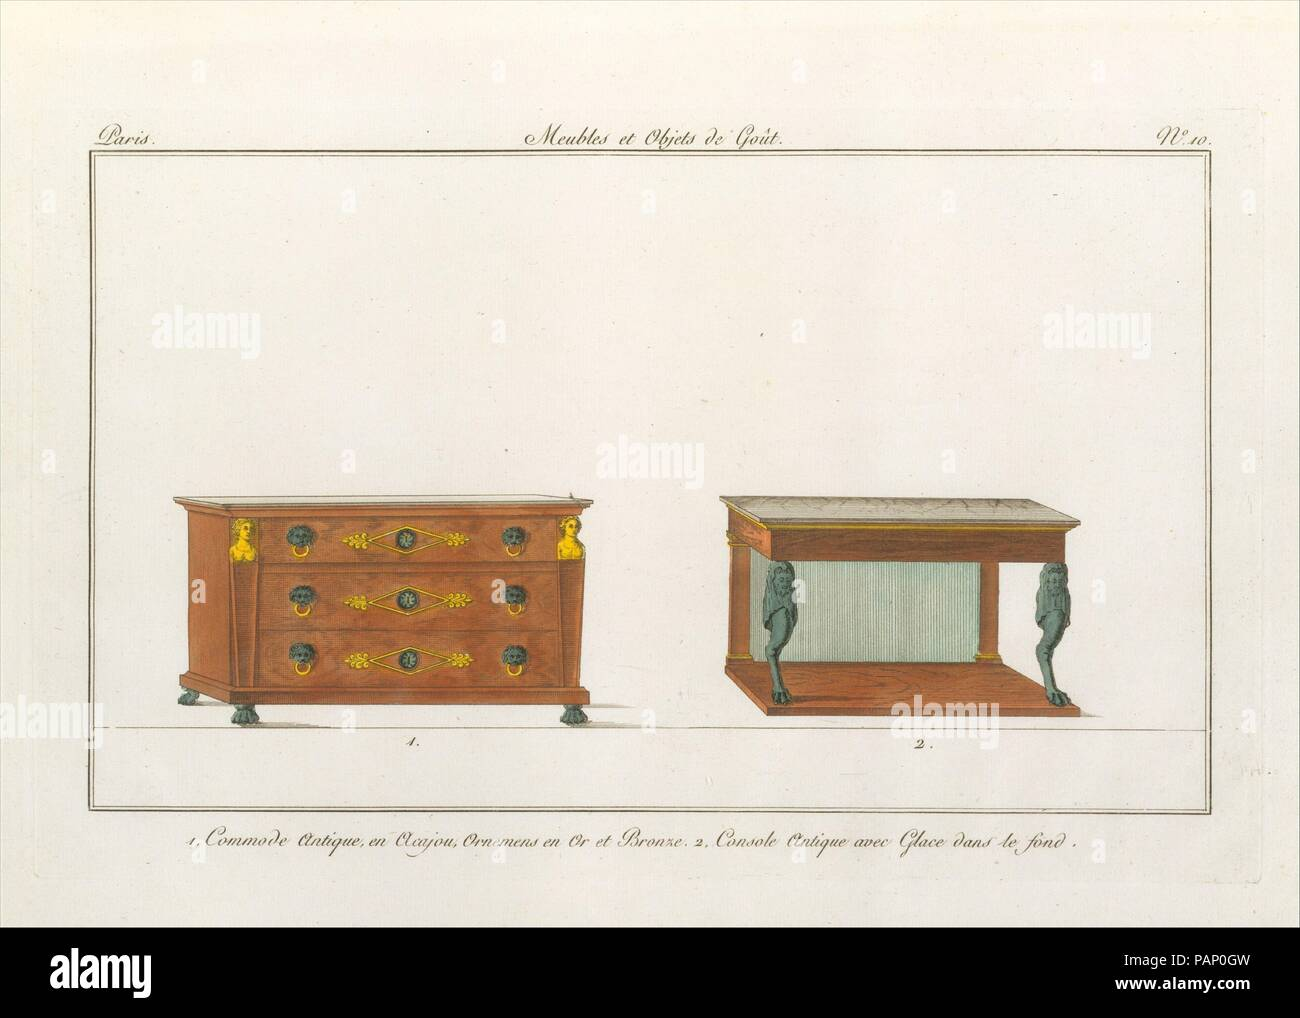 Design for a commode and console plate 10 in collection de